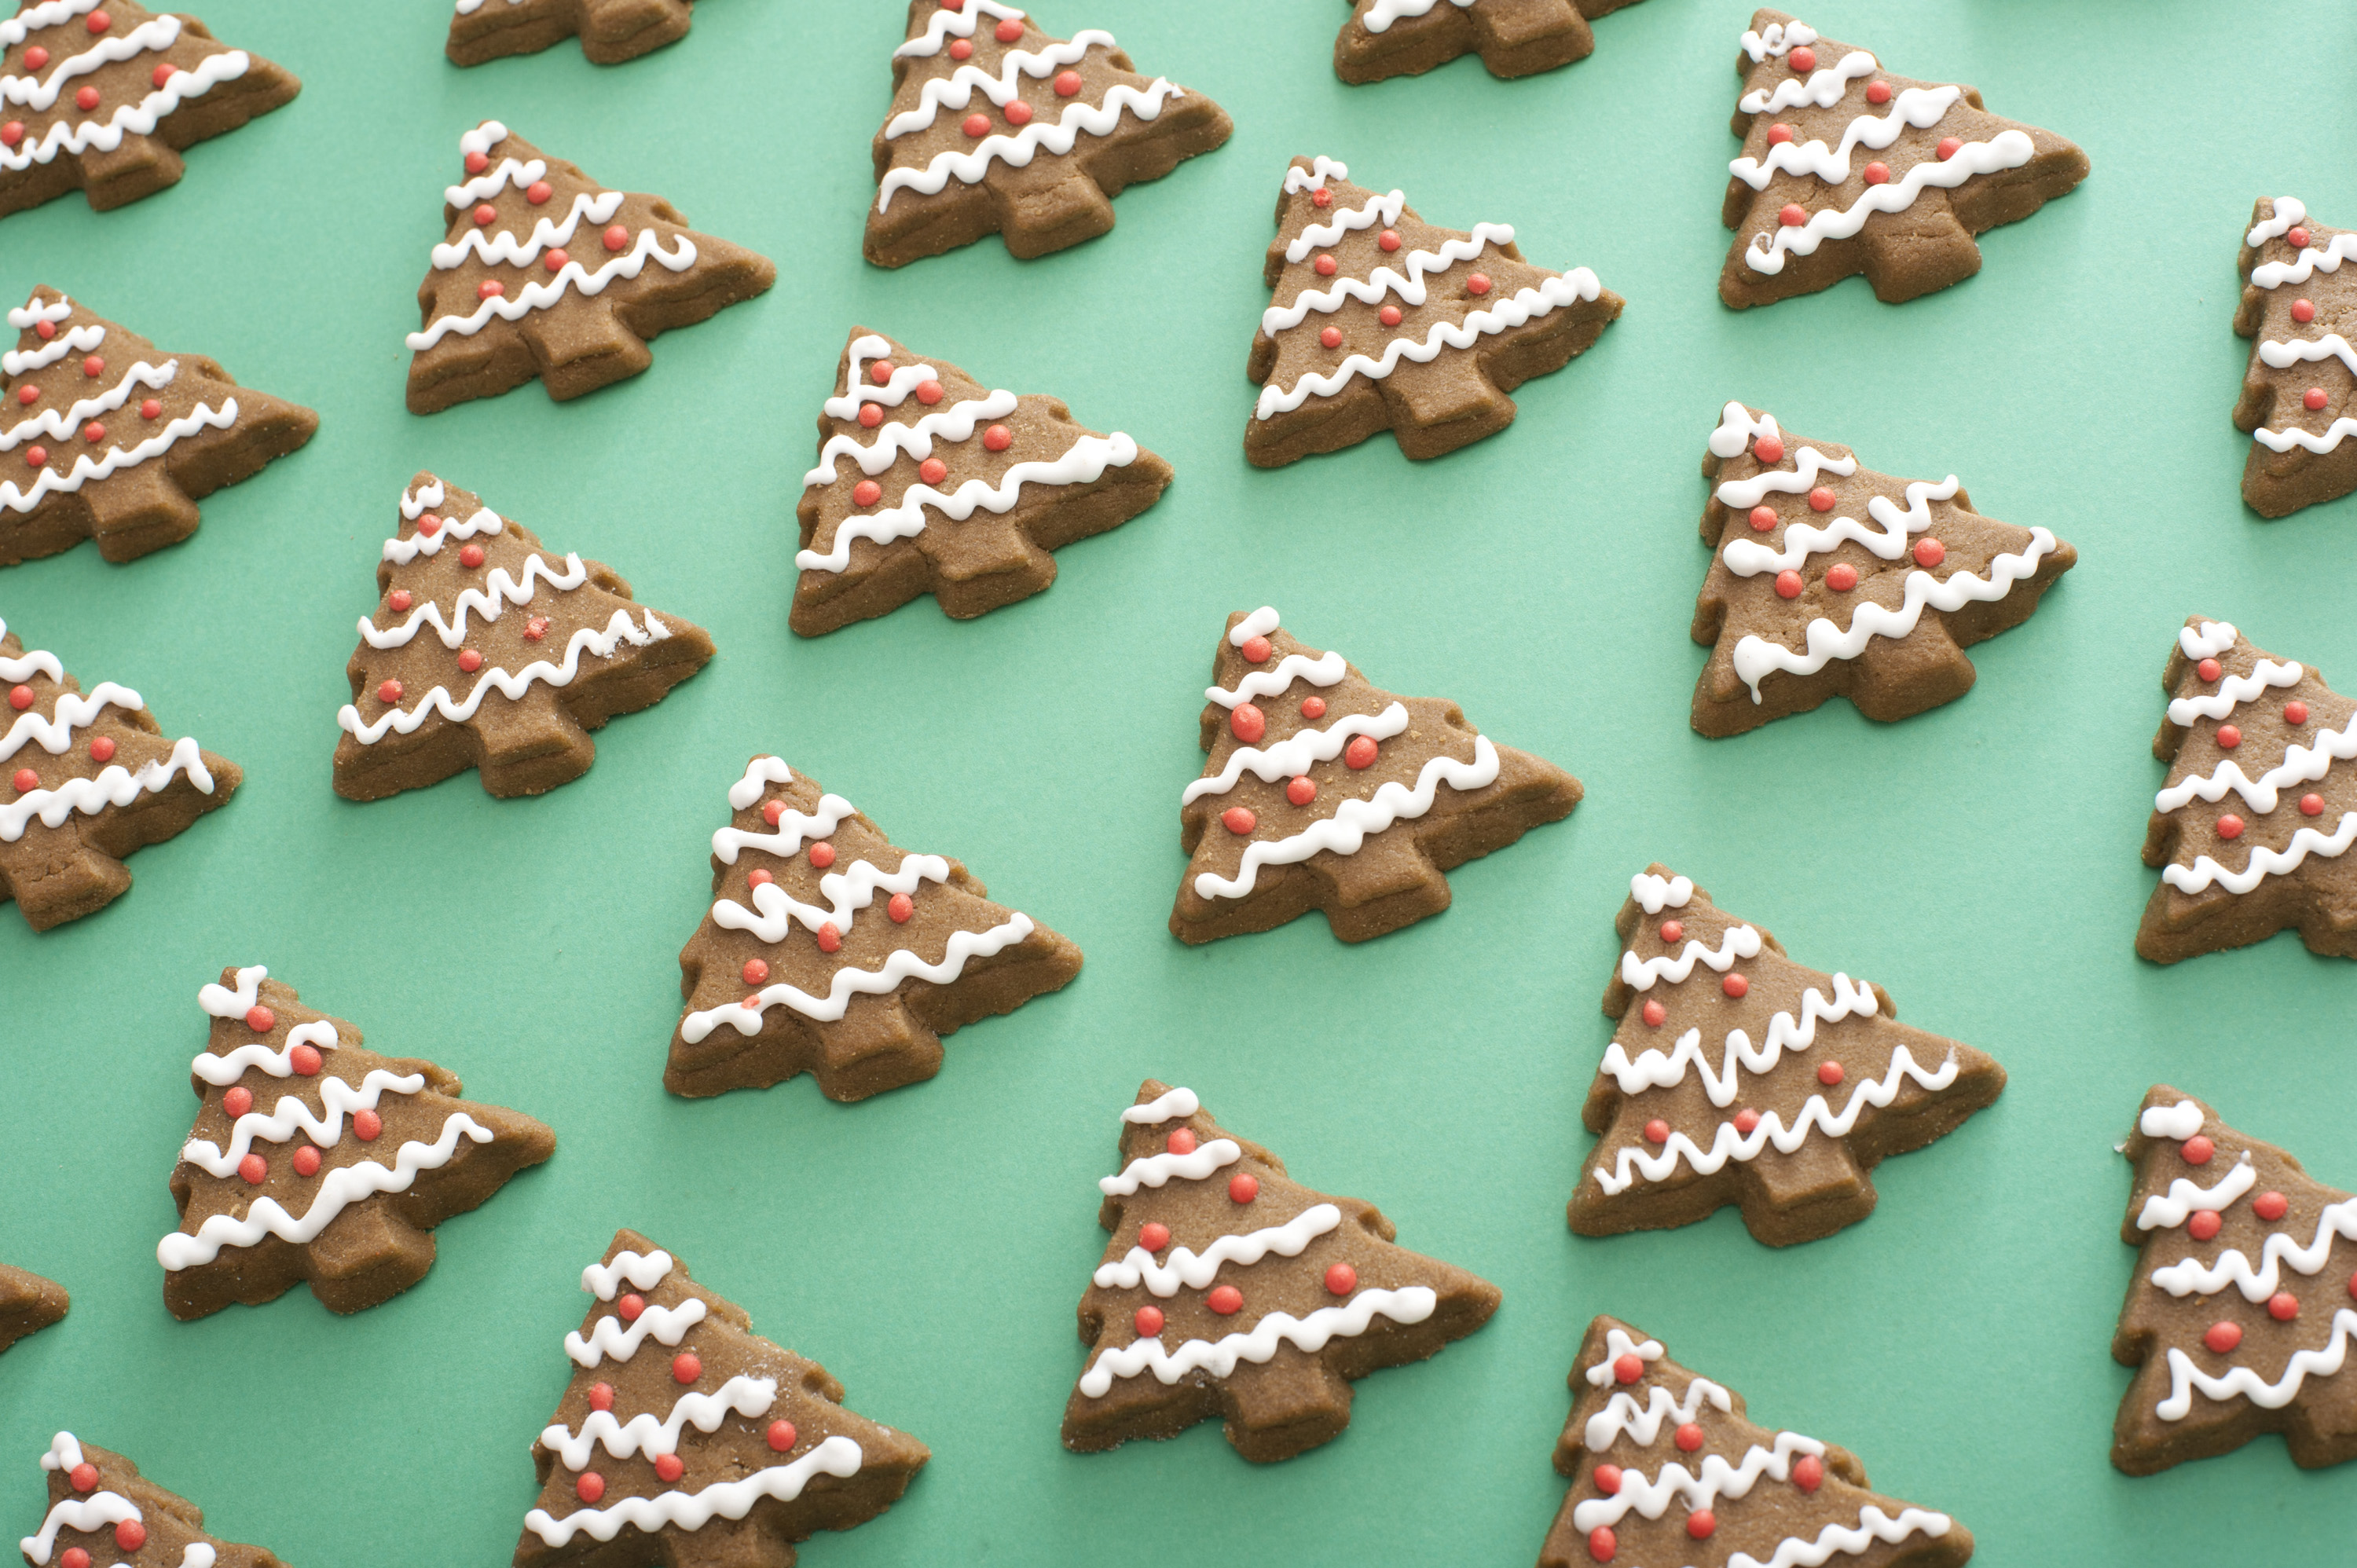 Background of traditional gingerbread Christmas cookies shaped as trees with decorative icing laid out neatly on a green surface viewed high angle